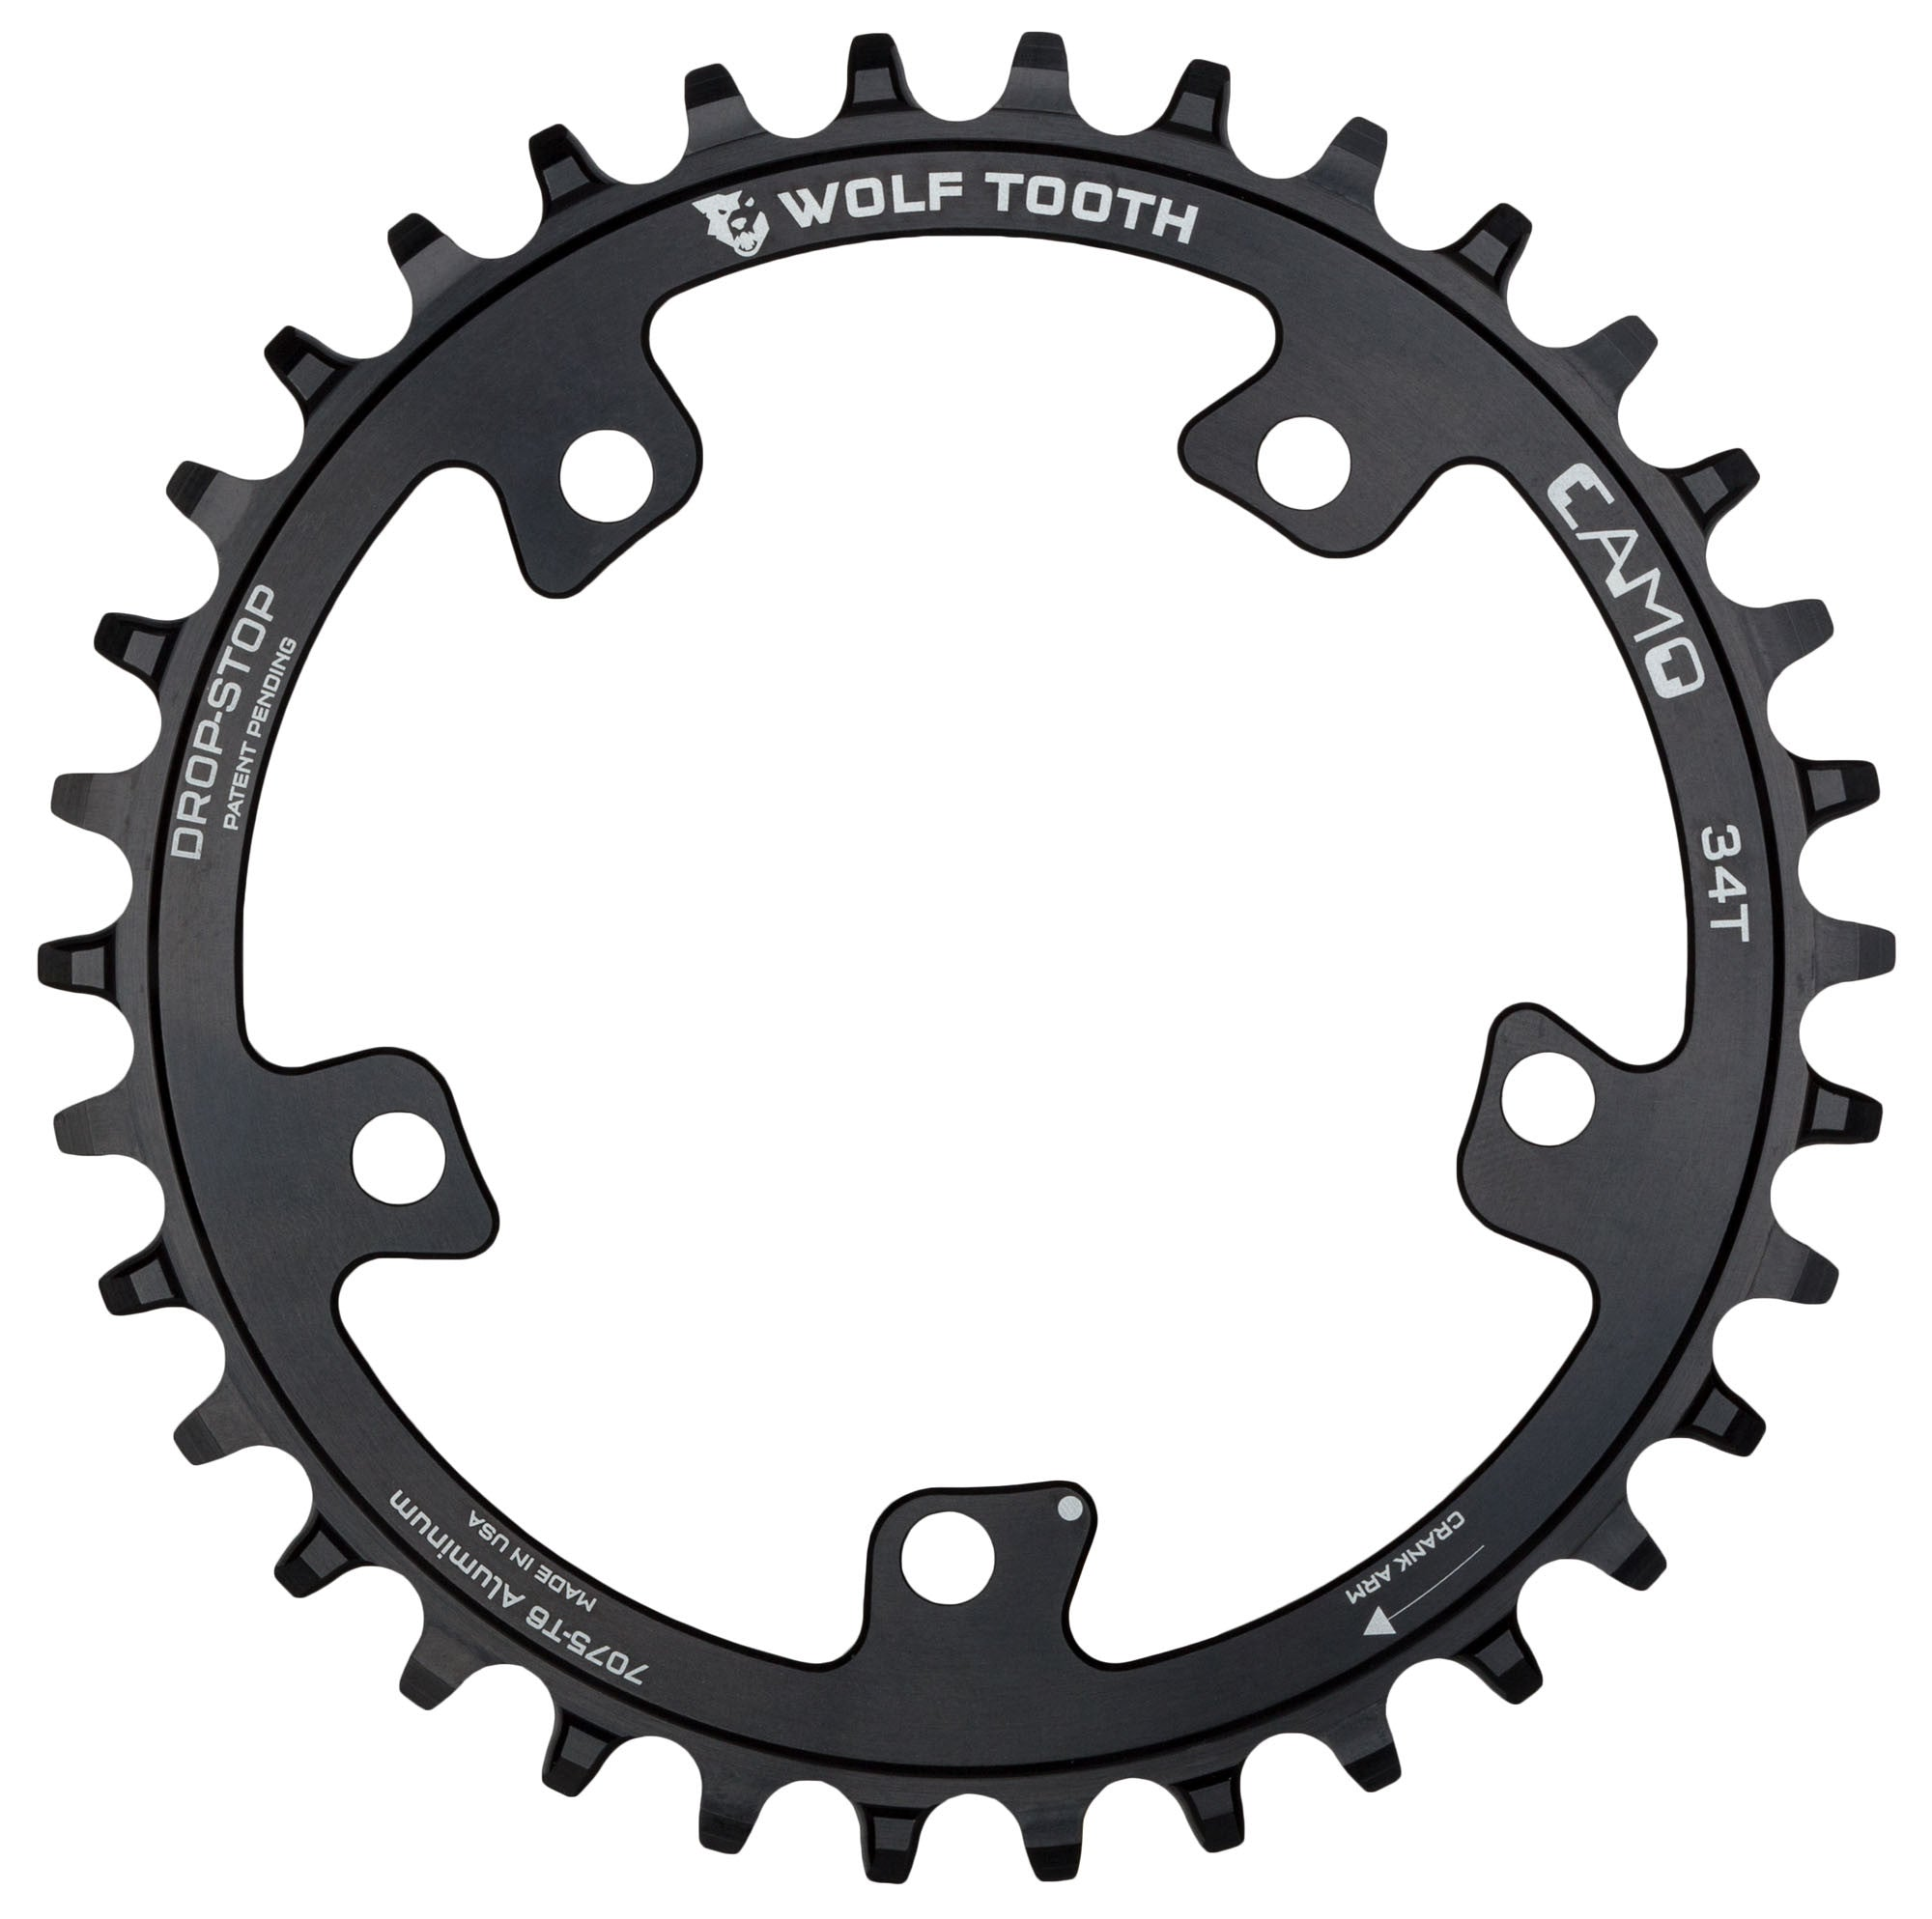 Wolf Tooth Components CAMO Stainless Round 32T Chainring